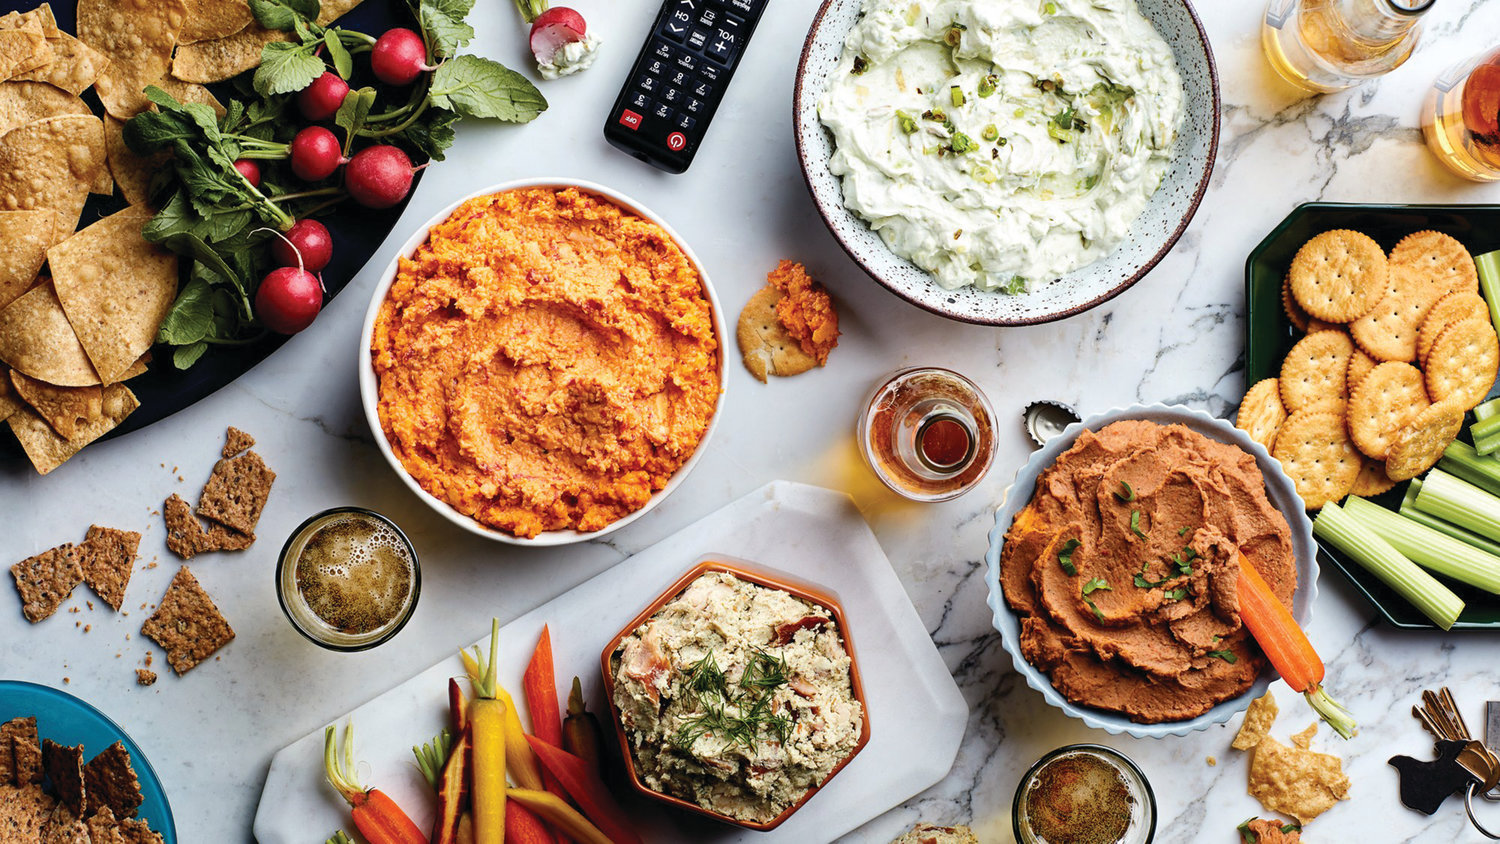 There are plenty of great dips served with a variety of vegetables, chips or crackers that provide noshes to everyone watching the Super Bowl game Sunday. Many of the dips can be prepared ahead of time — even those that require baking — allowing the hosts to enjoy their guests as well as the game.